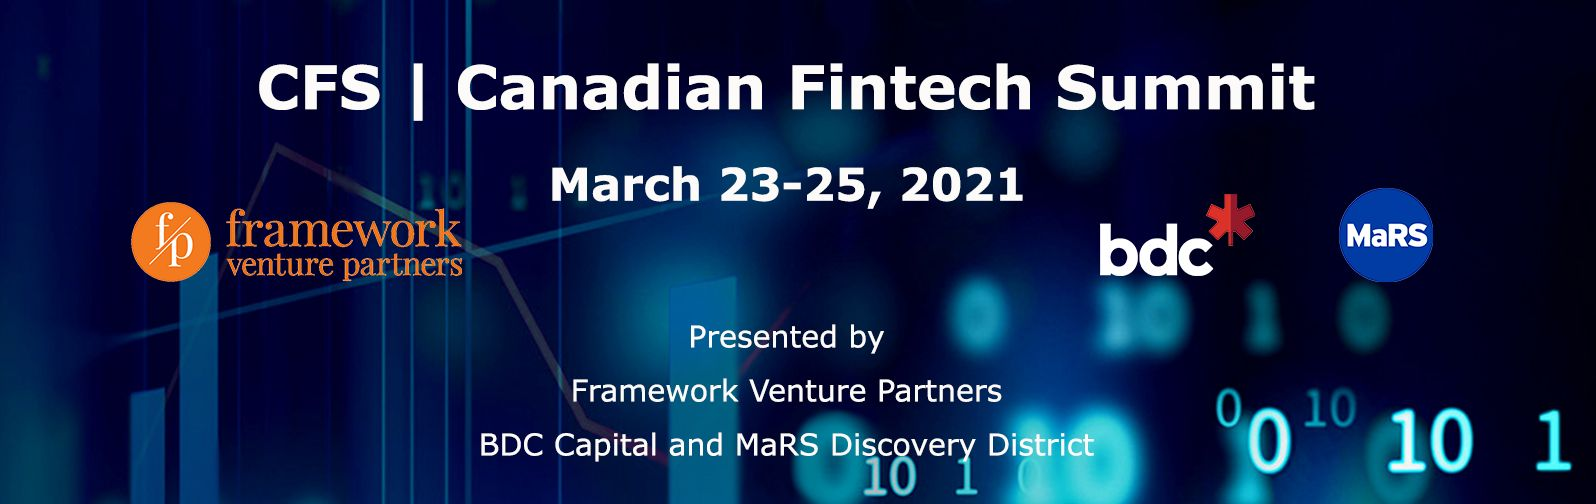 EXCLUSIVE TO TENANTS - Free tickets to the Virtual Canadian FinTech Summit 2021